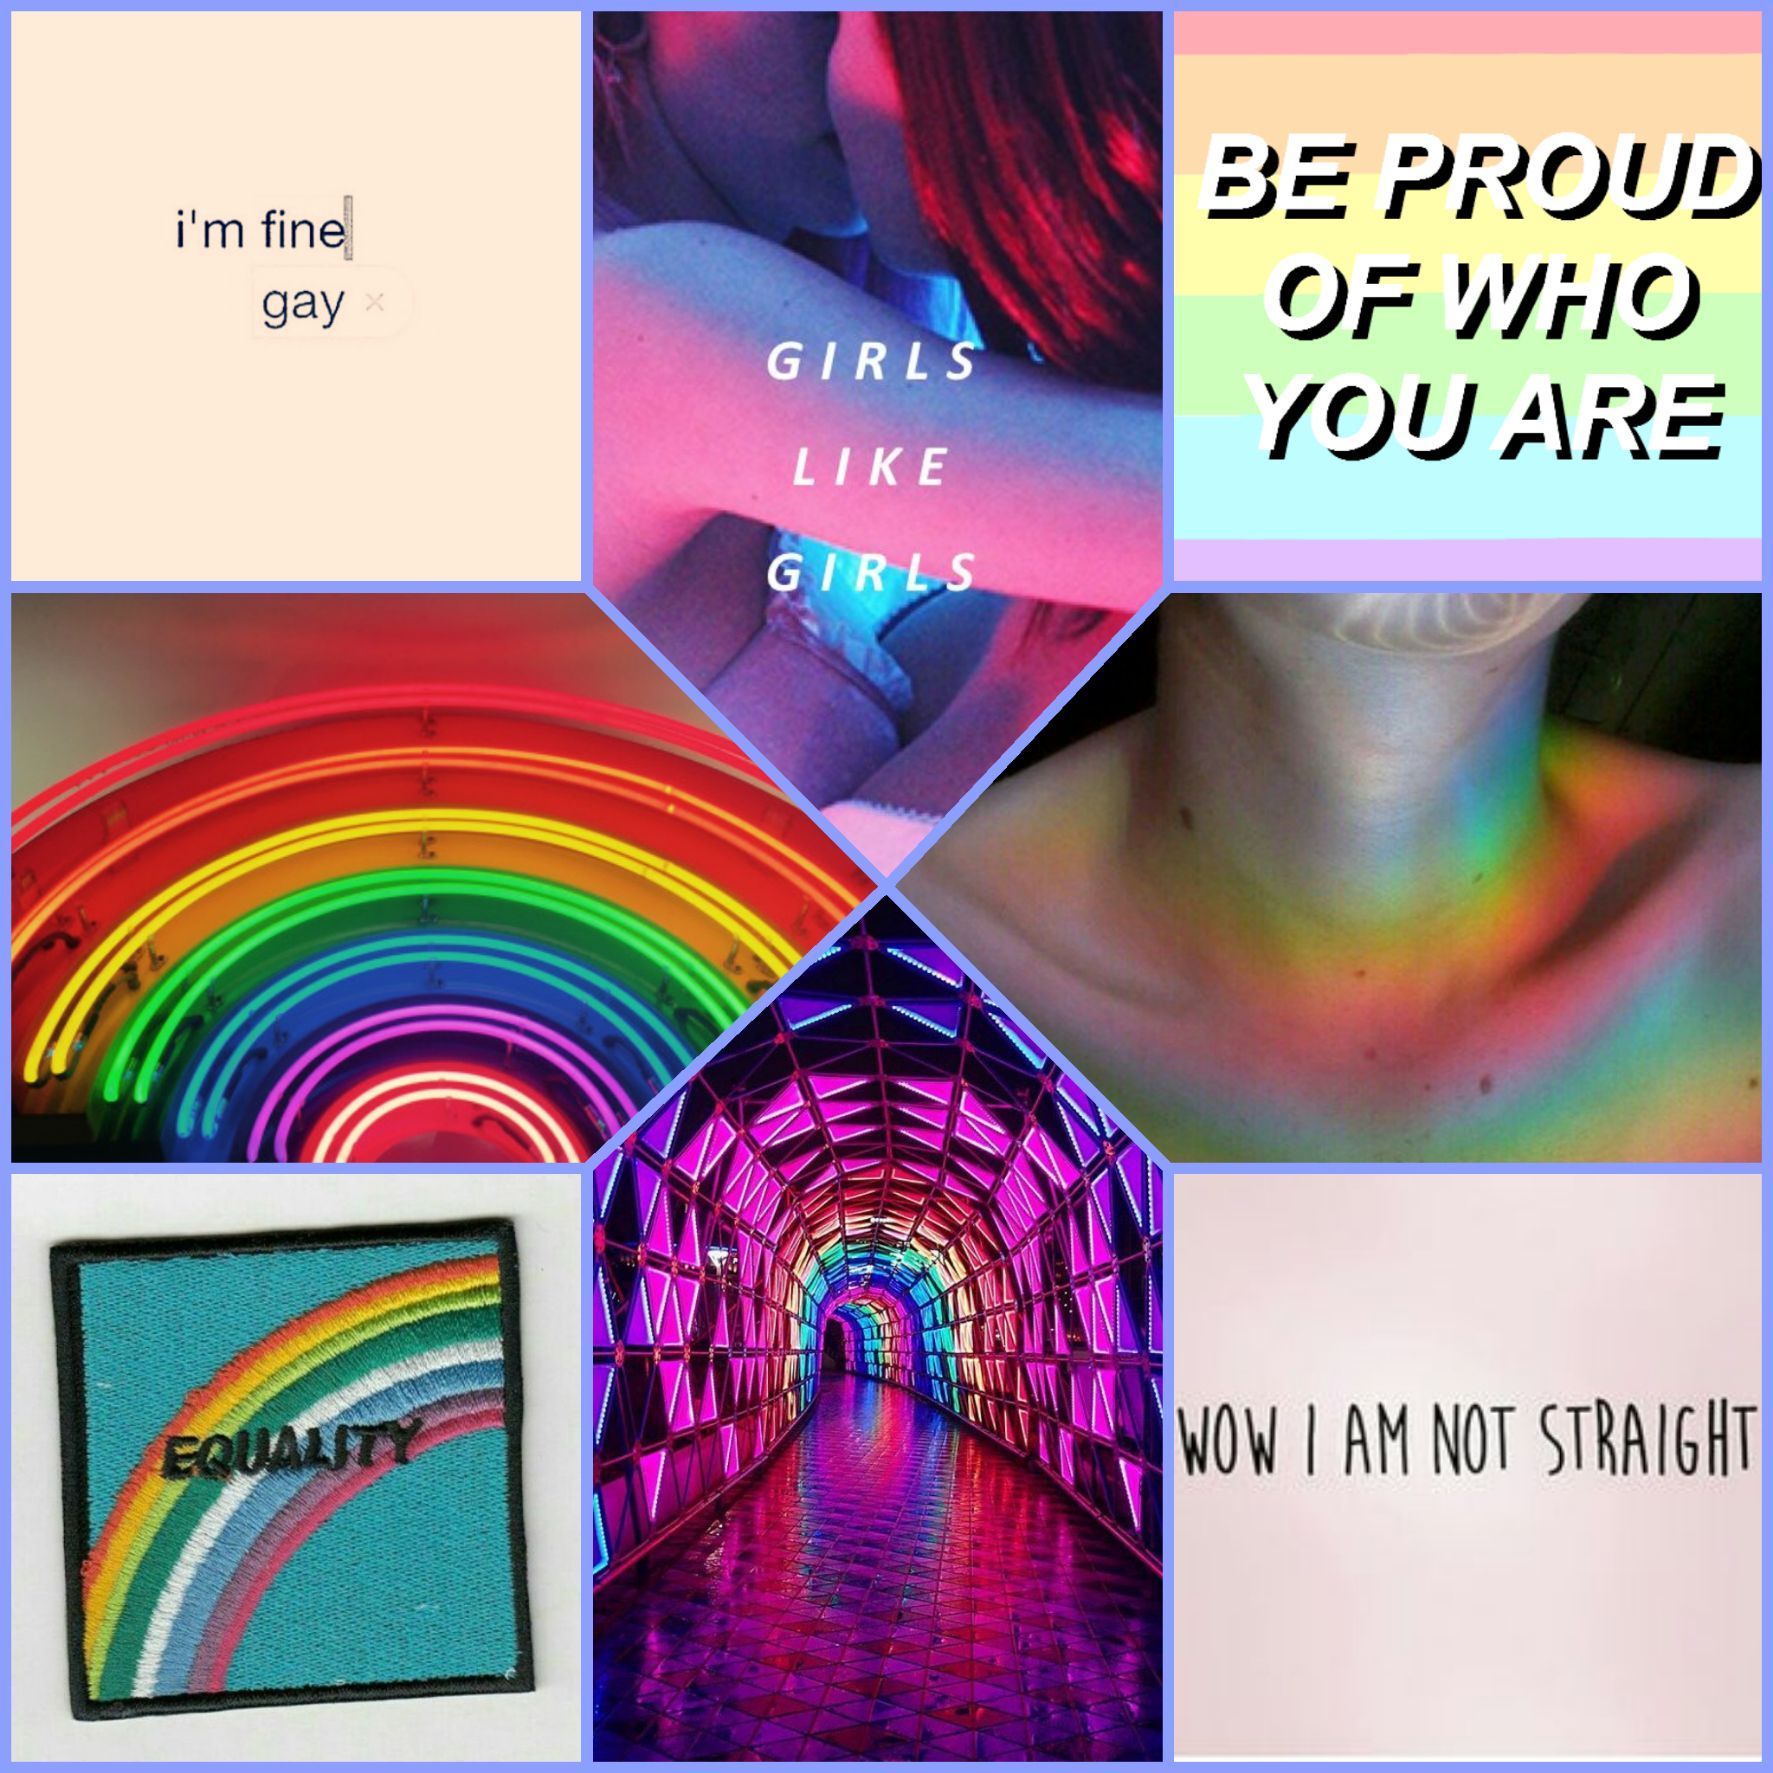 Here is some pride aesthetics that i made!